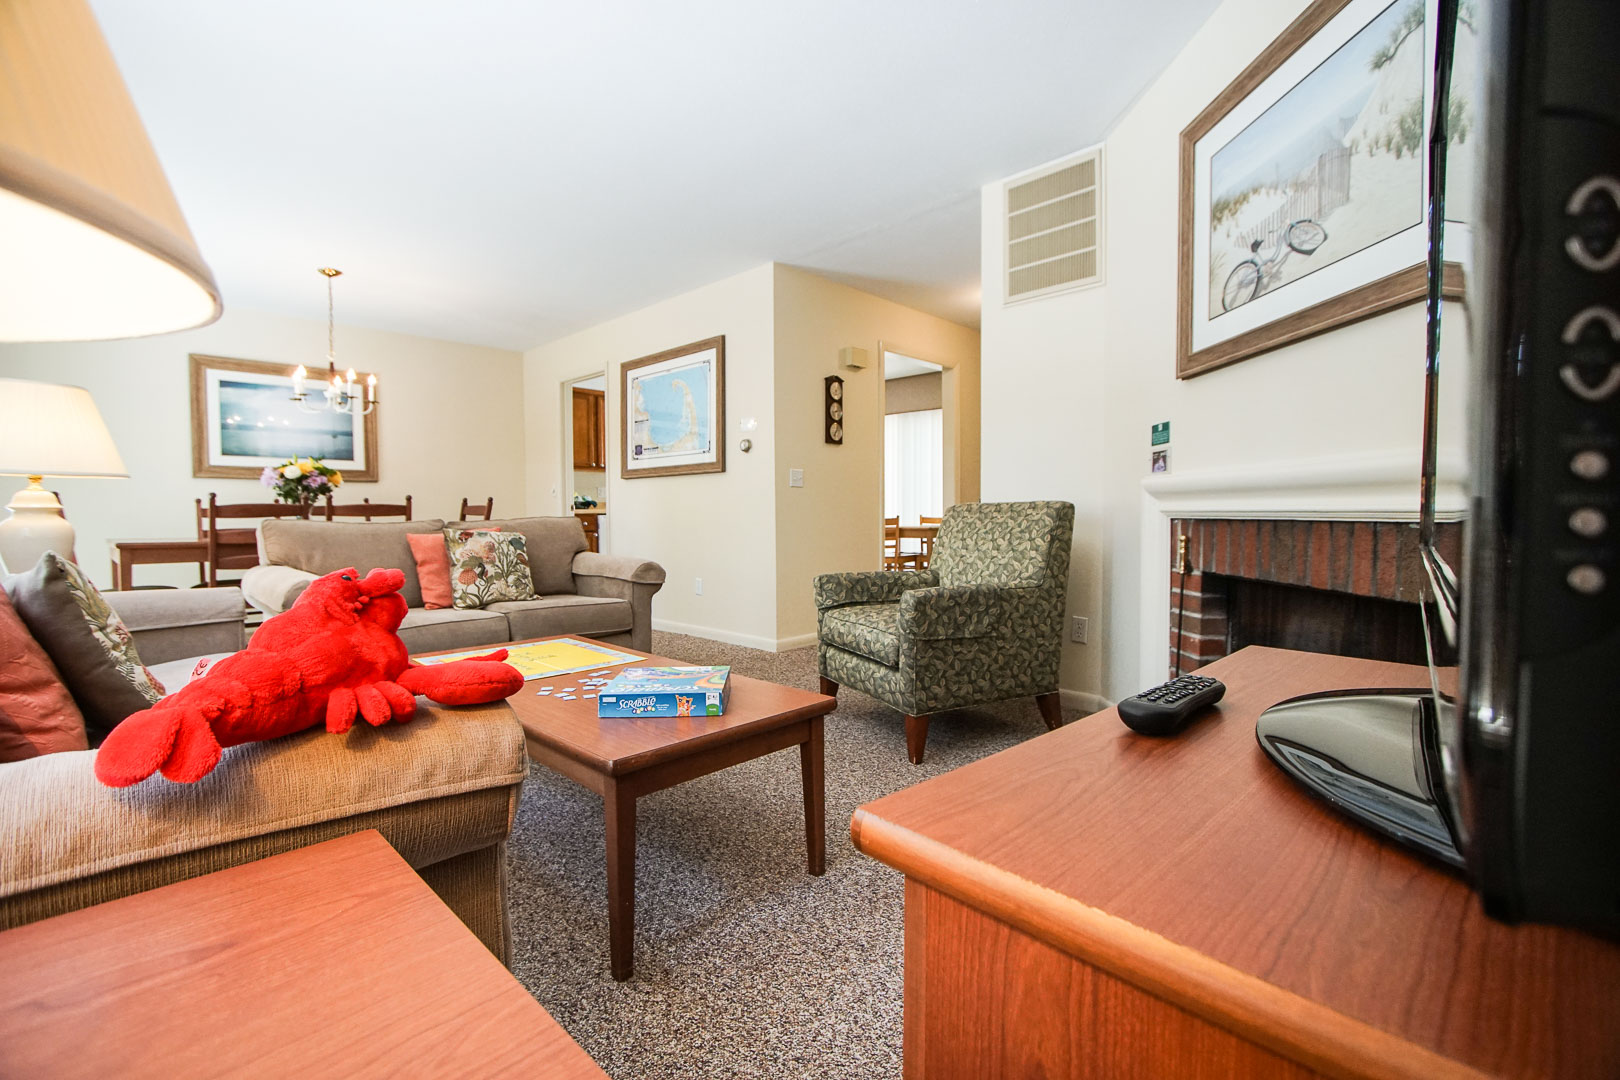 A cozy and spacious living room area at VRI's Brewster Green Resort in Massachusetts.